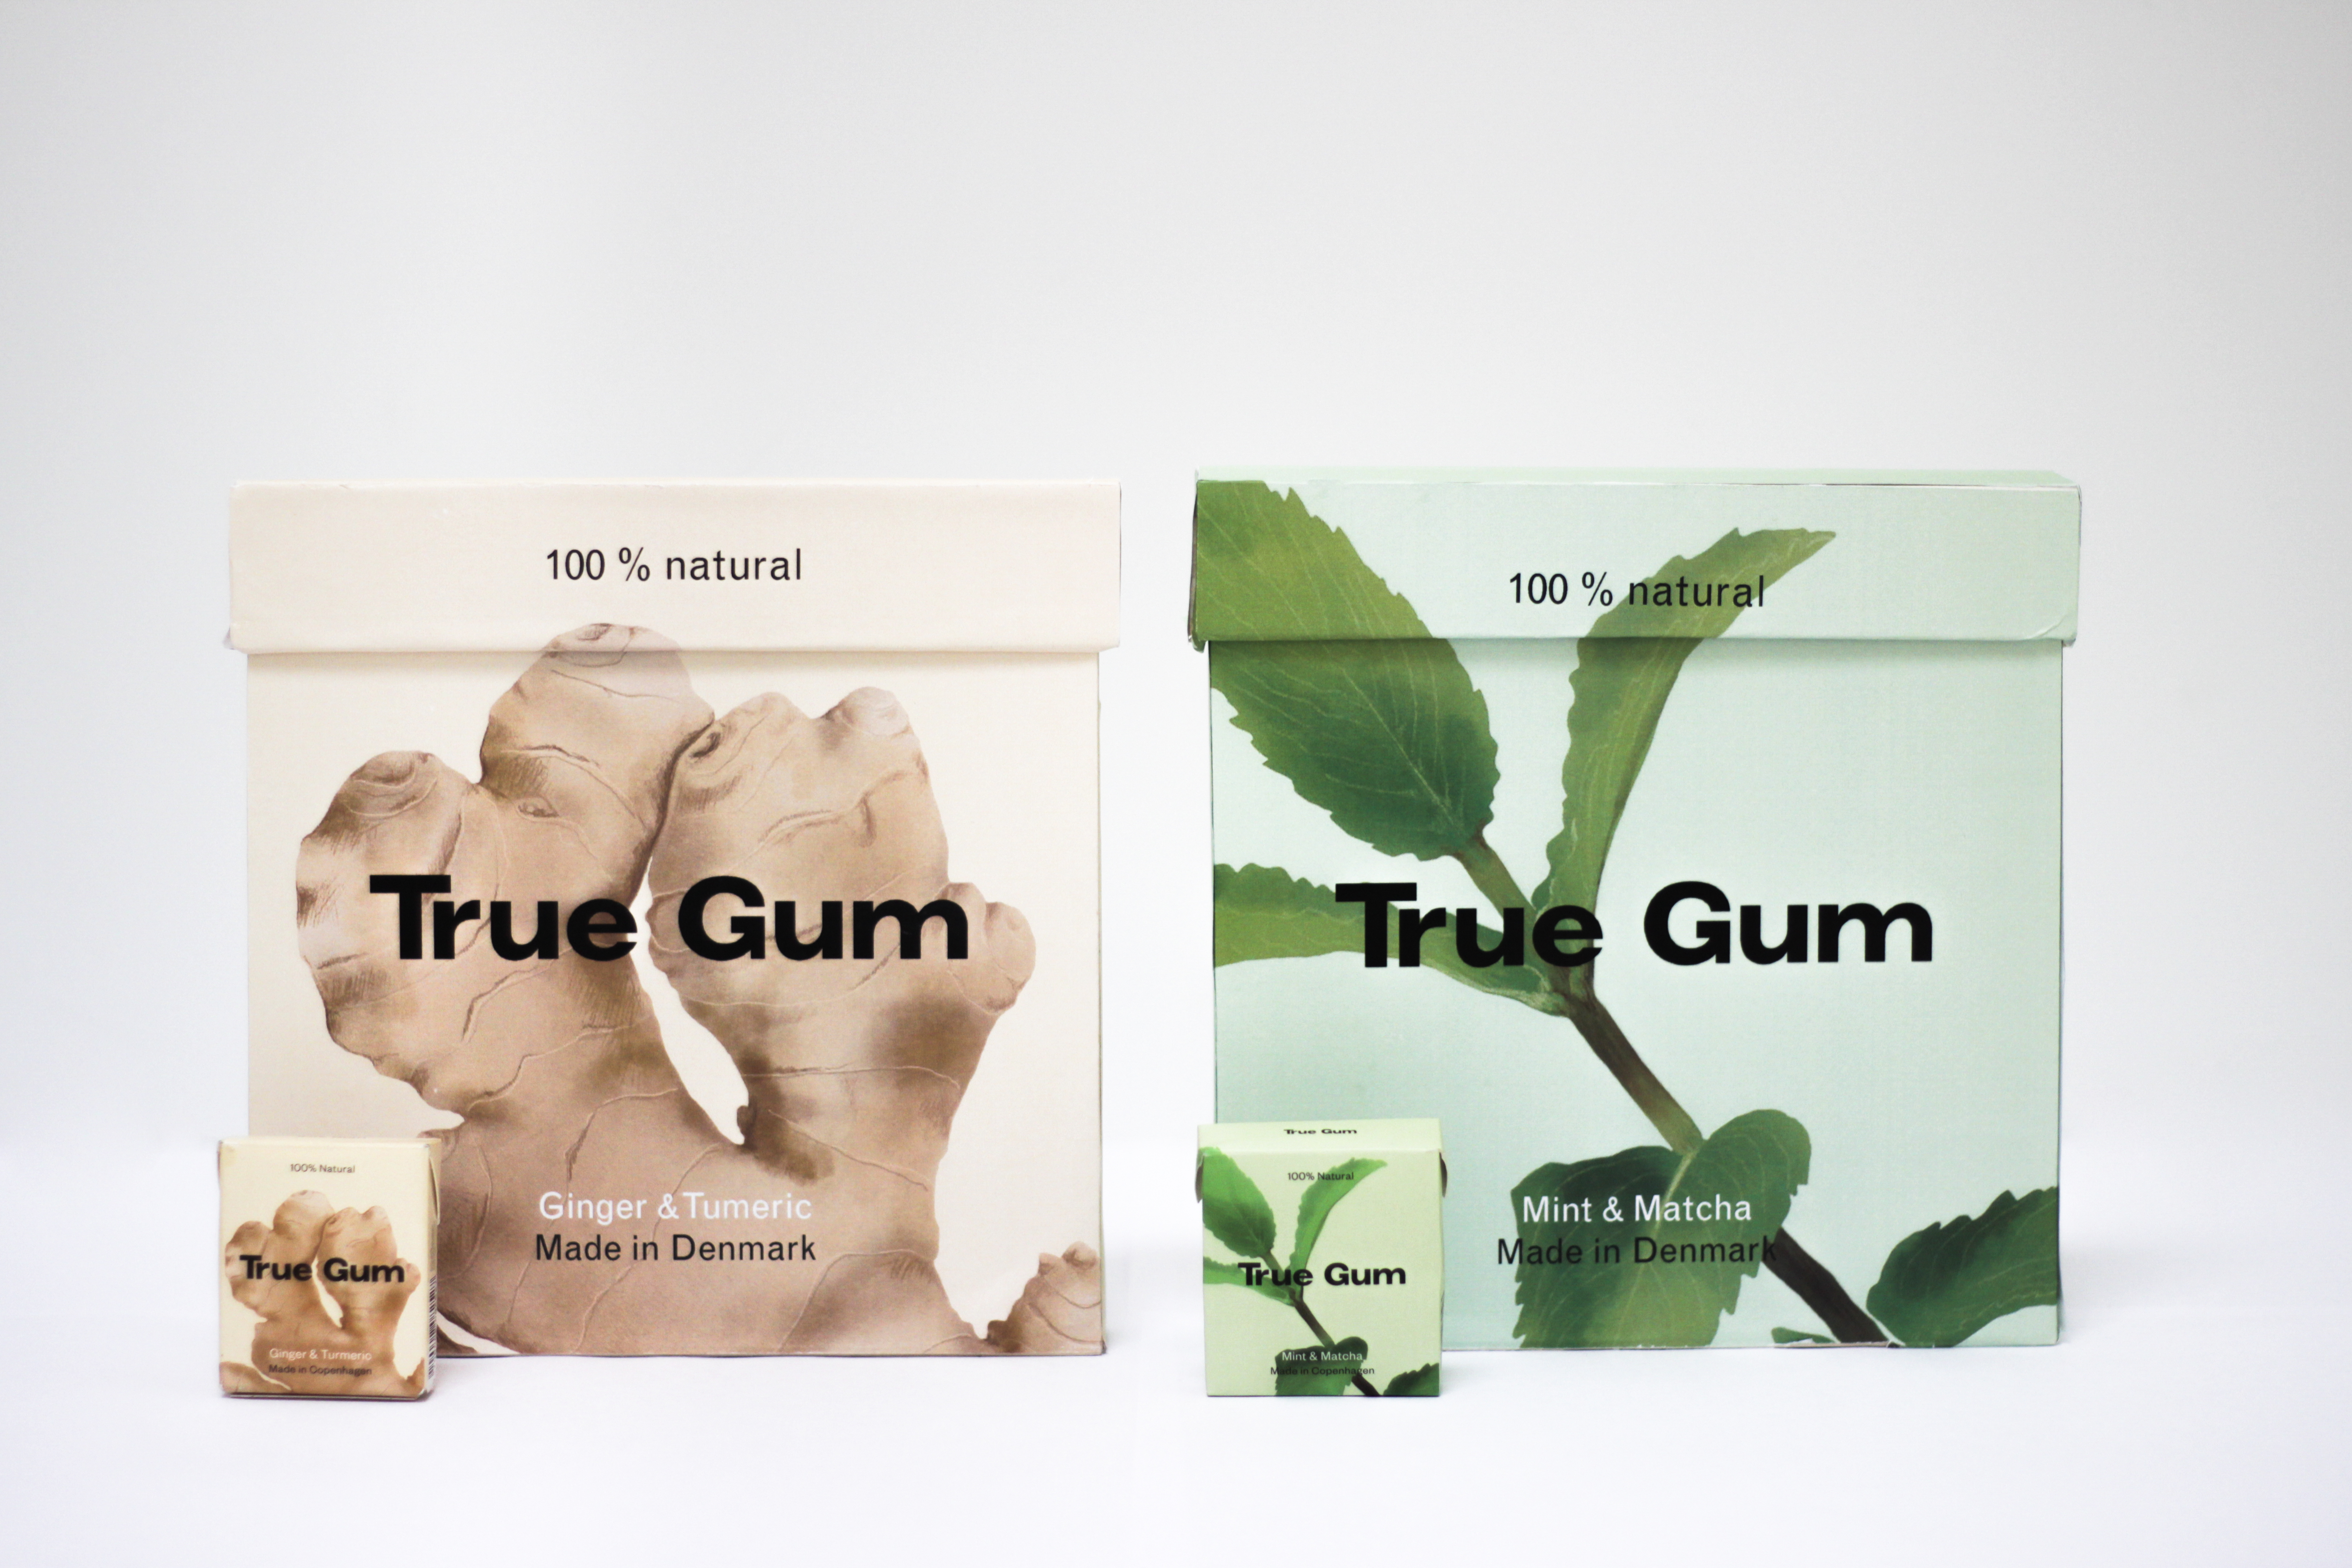 Packaging design by Studio Lou, brand book by me